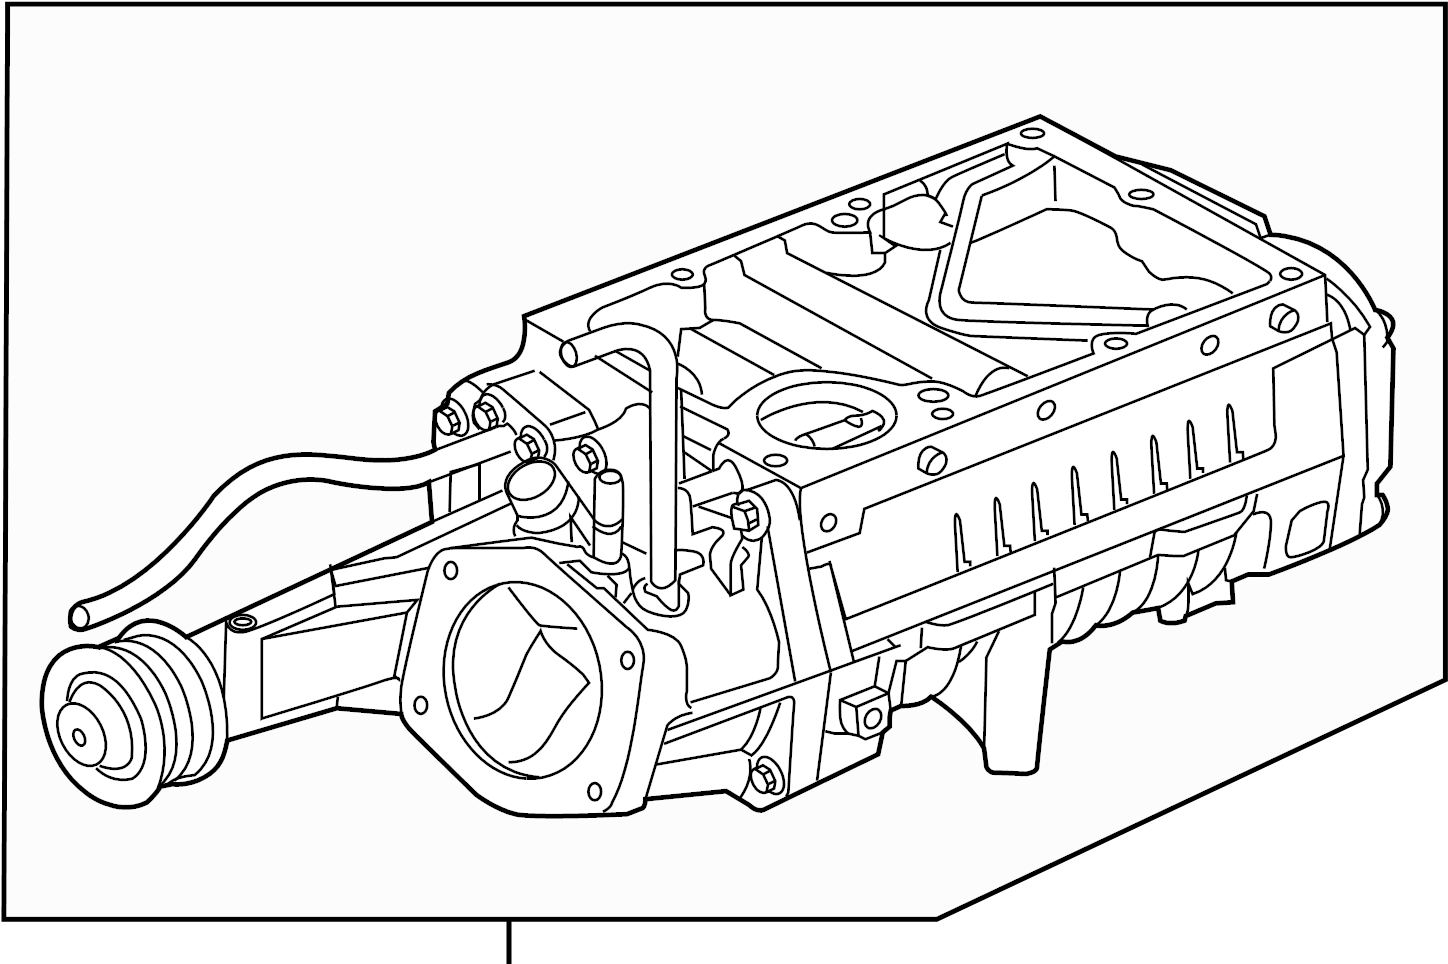 2010 jaguar xfr engine diagram audi rs6 engine wiring